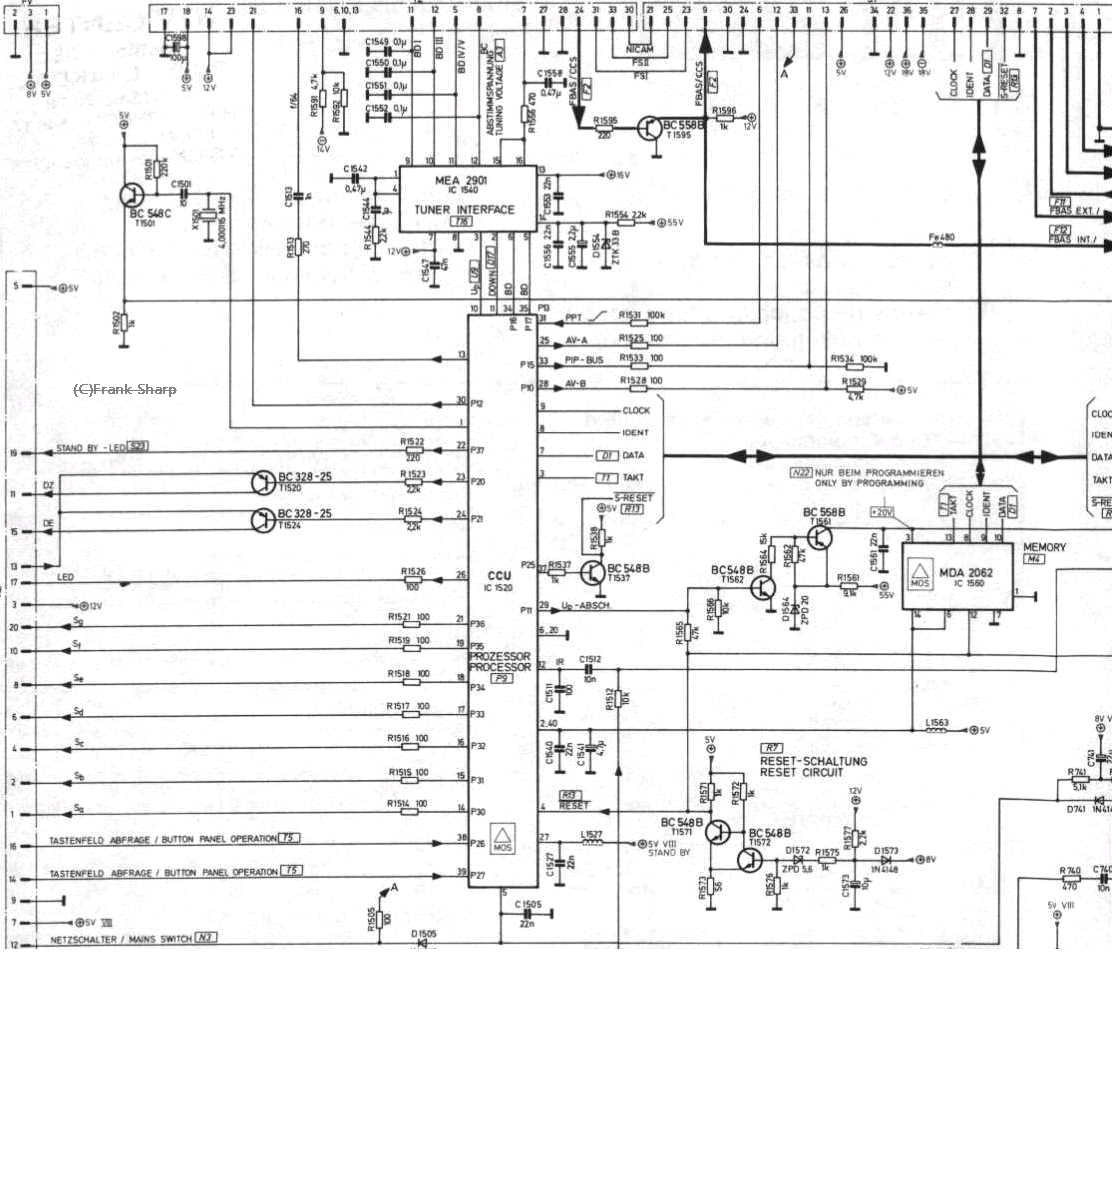 [DIAGRAM] Biffi Icon 1000 Wiring Diagram FULL Version HD